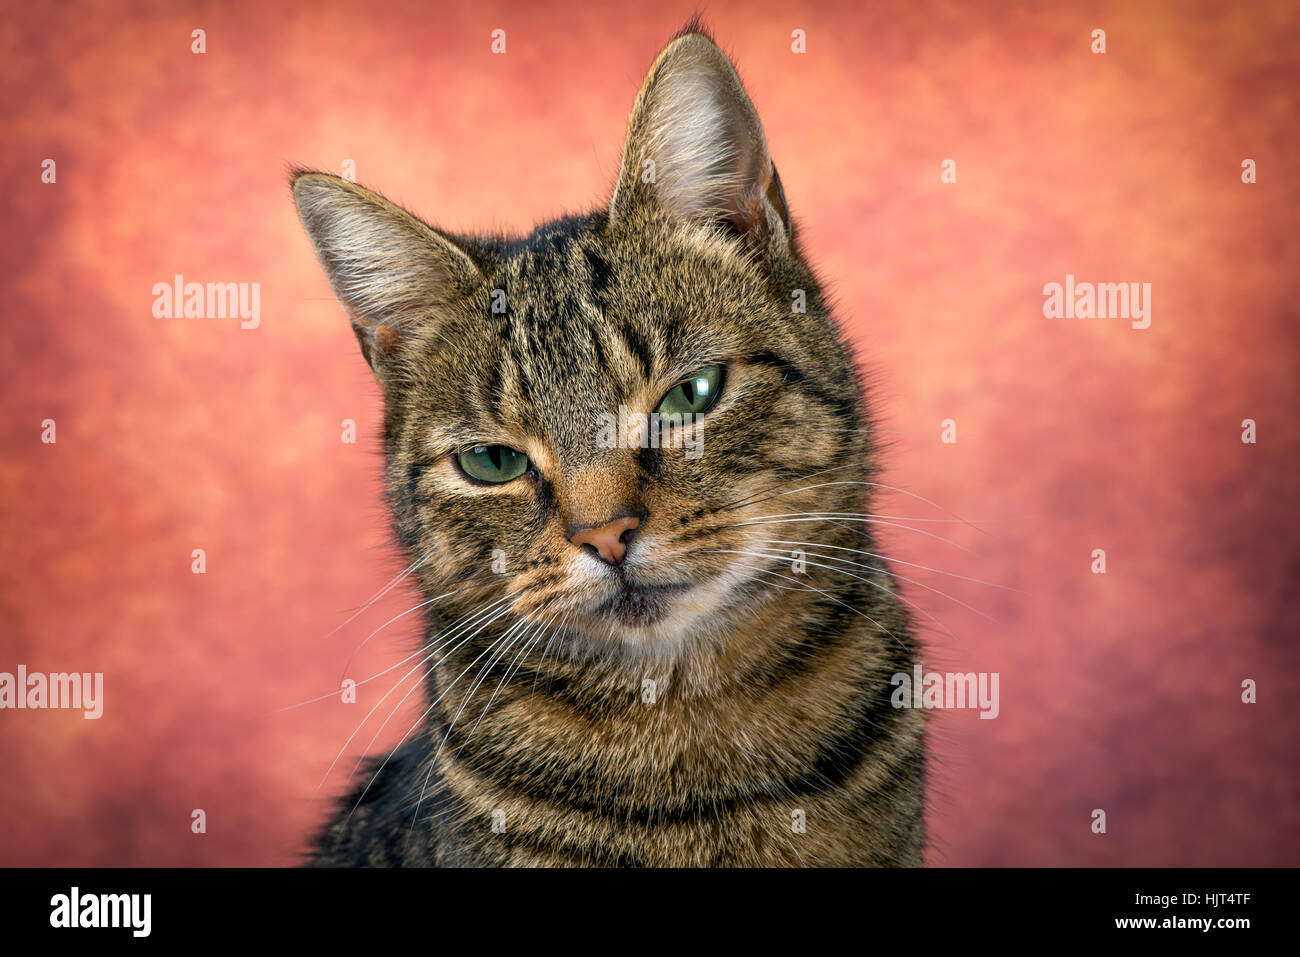 Portrait of tabby cat in front of reddish background - Stock Image